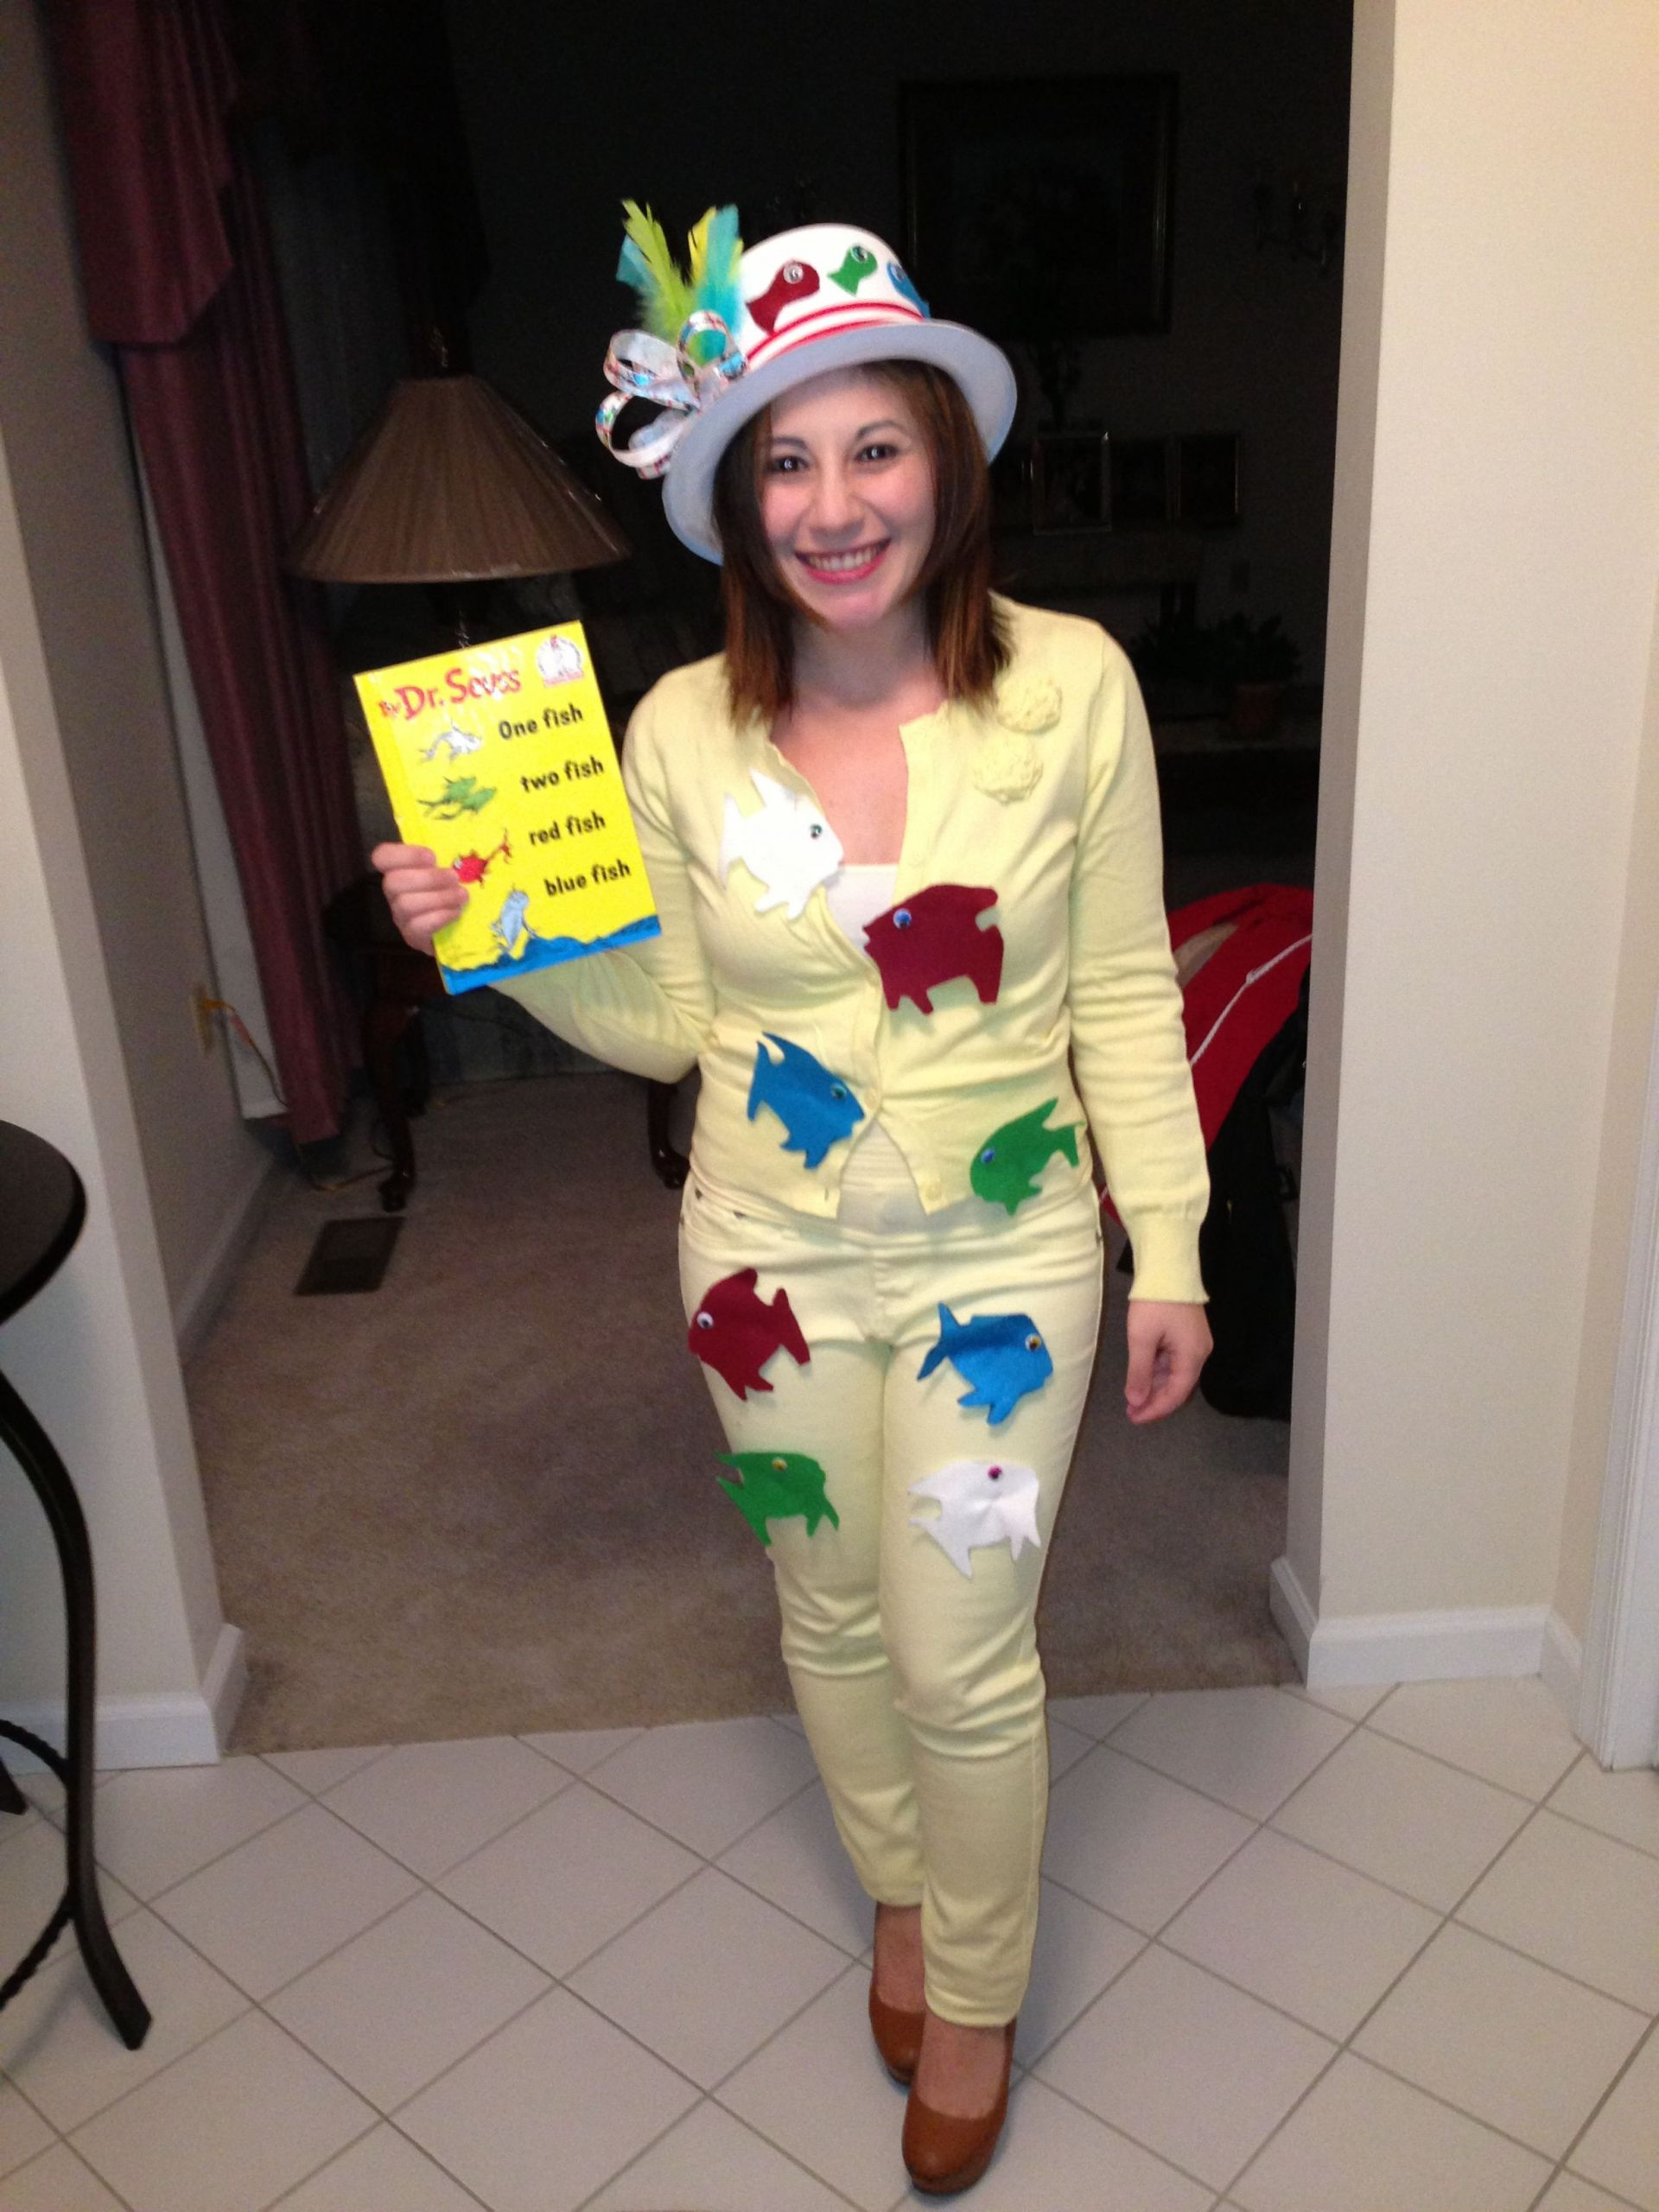 DIY Fish Costumes For Adults  Dr Seuss one fish two fish homemade costume